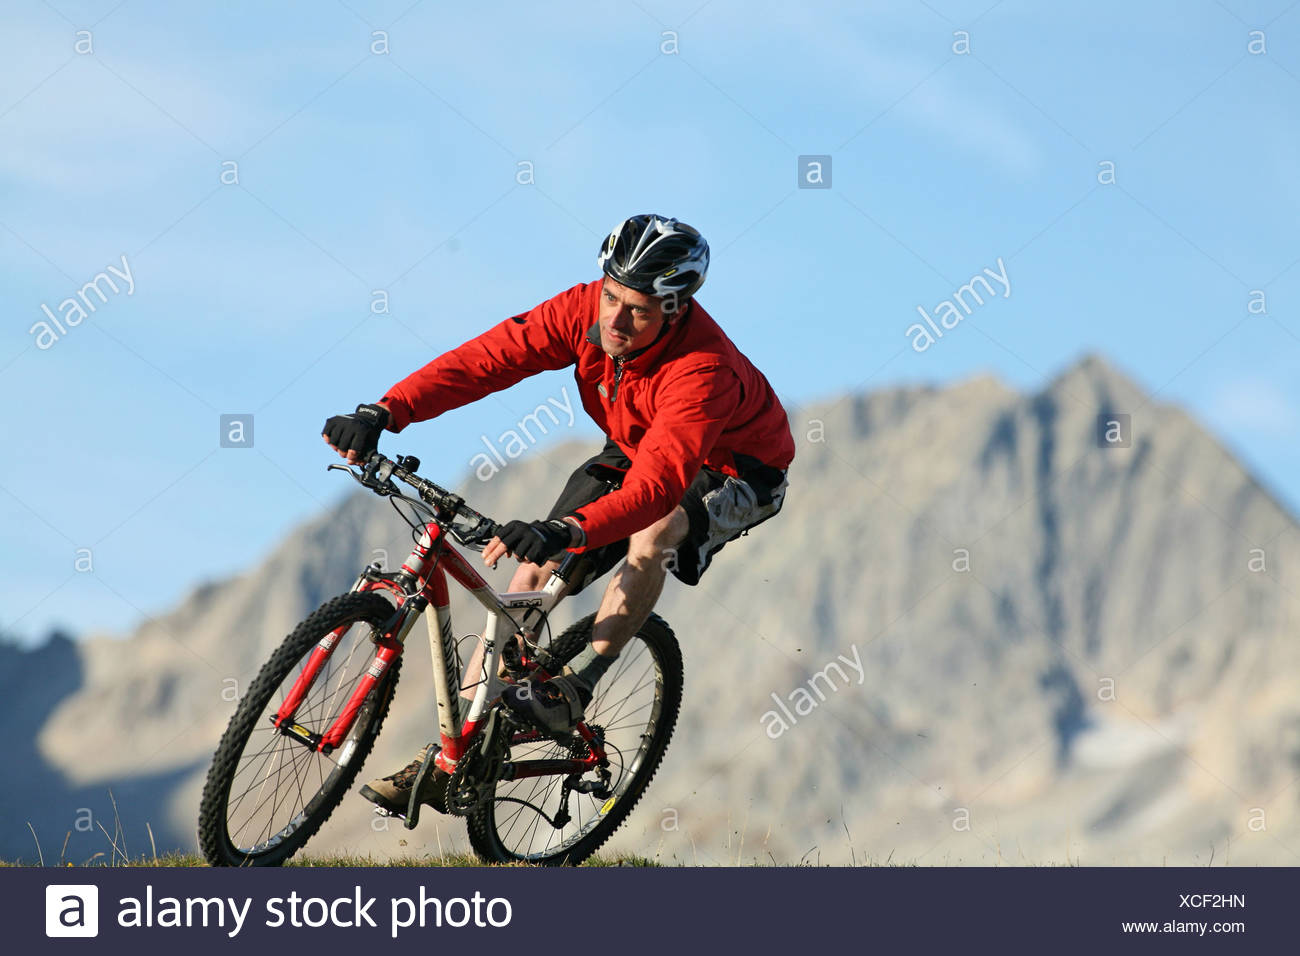 man singles action mountain biker biking biking bicycle bike biking bicycle riding a bike cyclist MTB mou - Stock Image